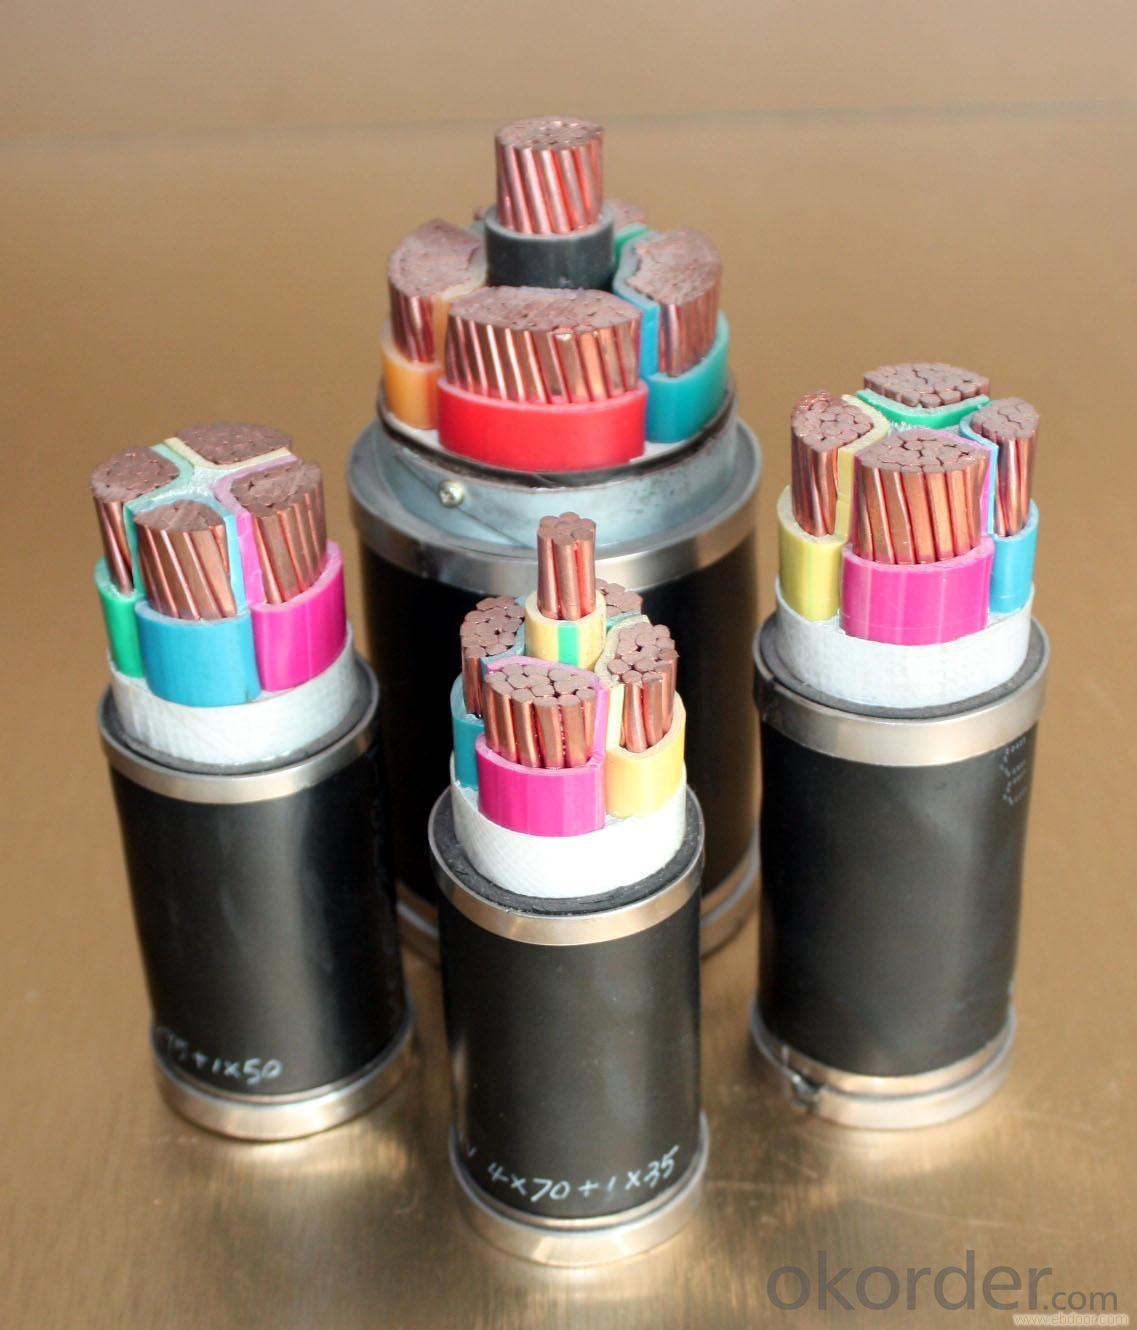 Concentric cables, 1/0 AWG 6AWG 8AWG 12AWG cable